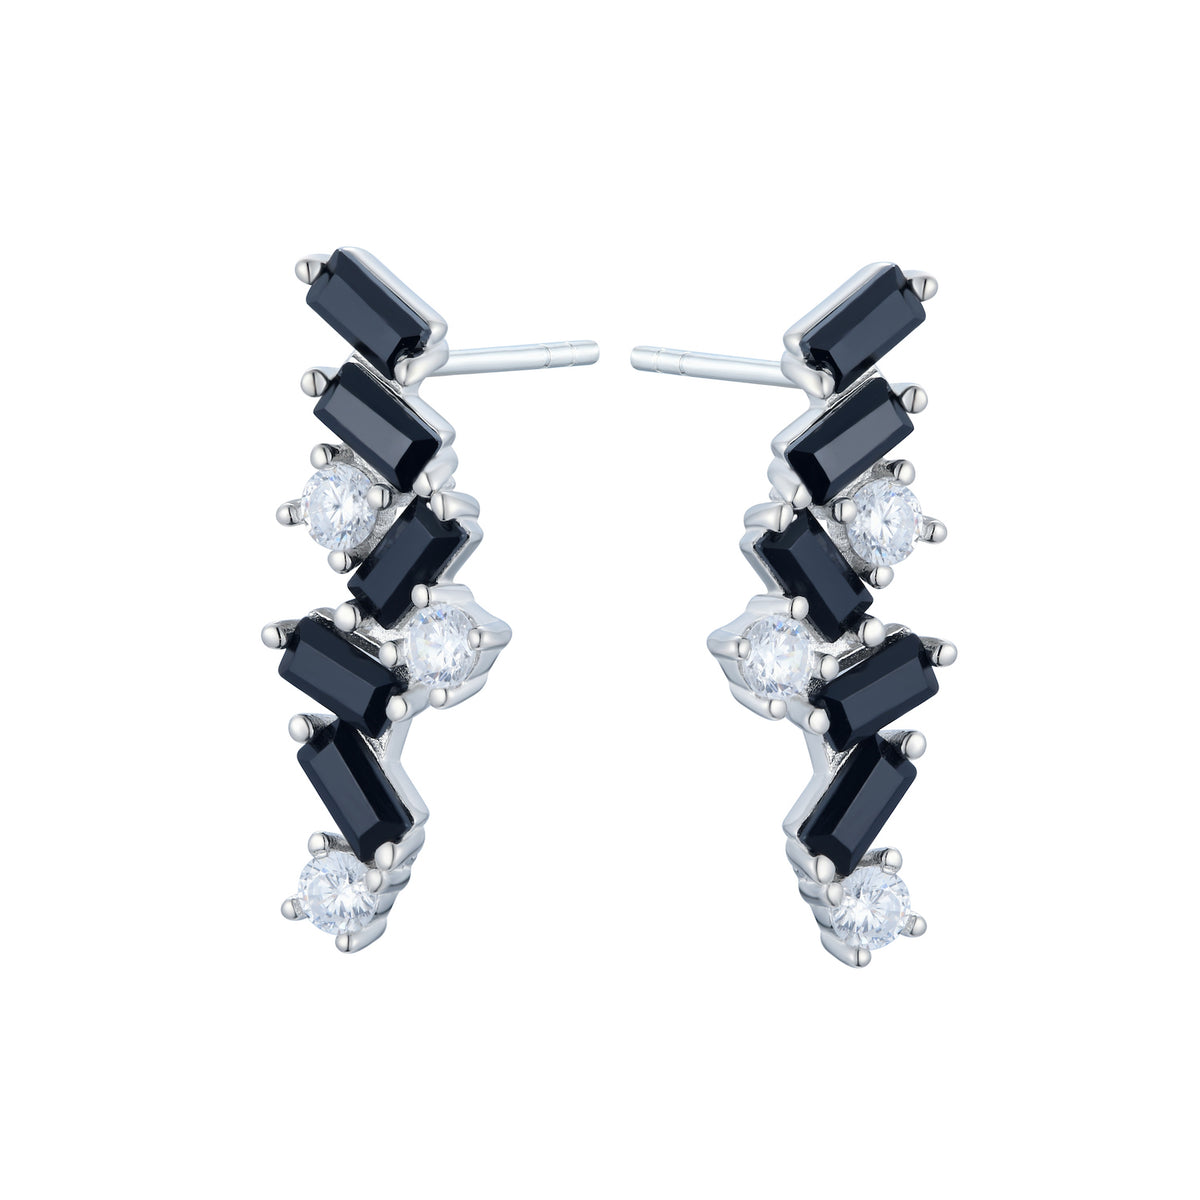 Ferentina | Zabaione Earrings | Black & White CZ | Rhodium Plated 925 Silver